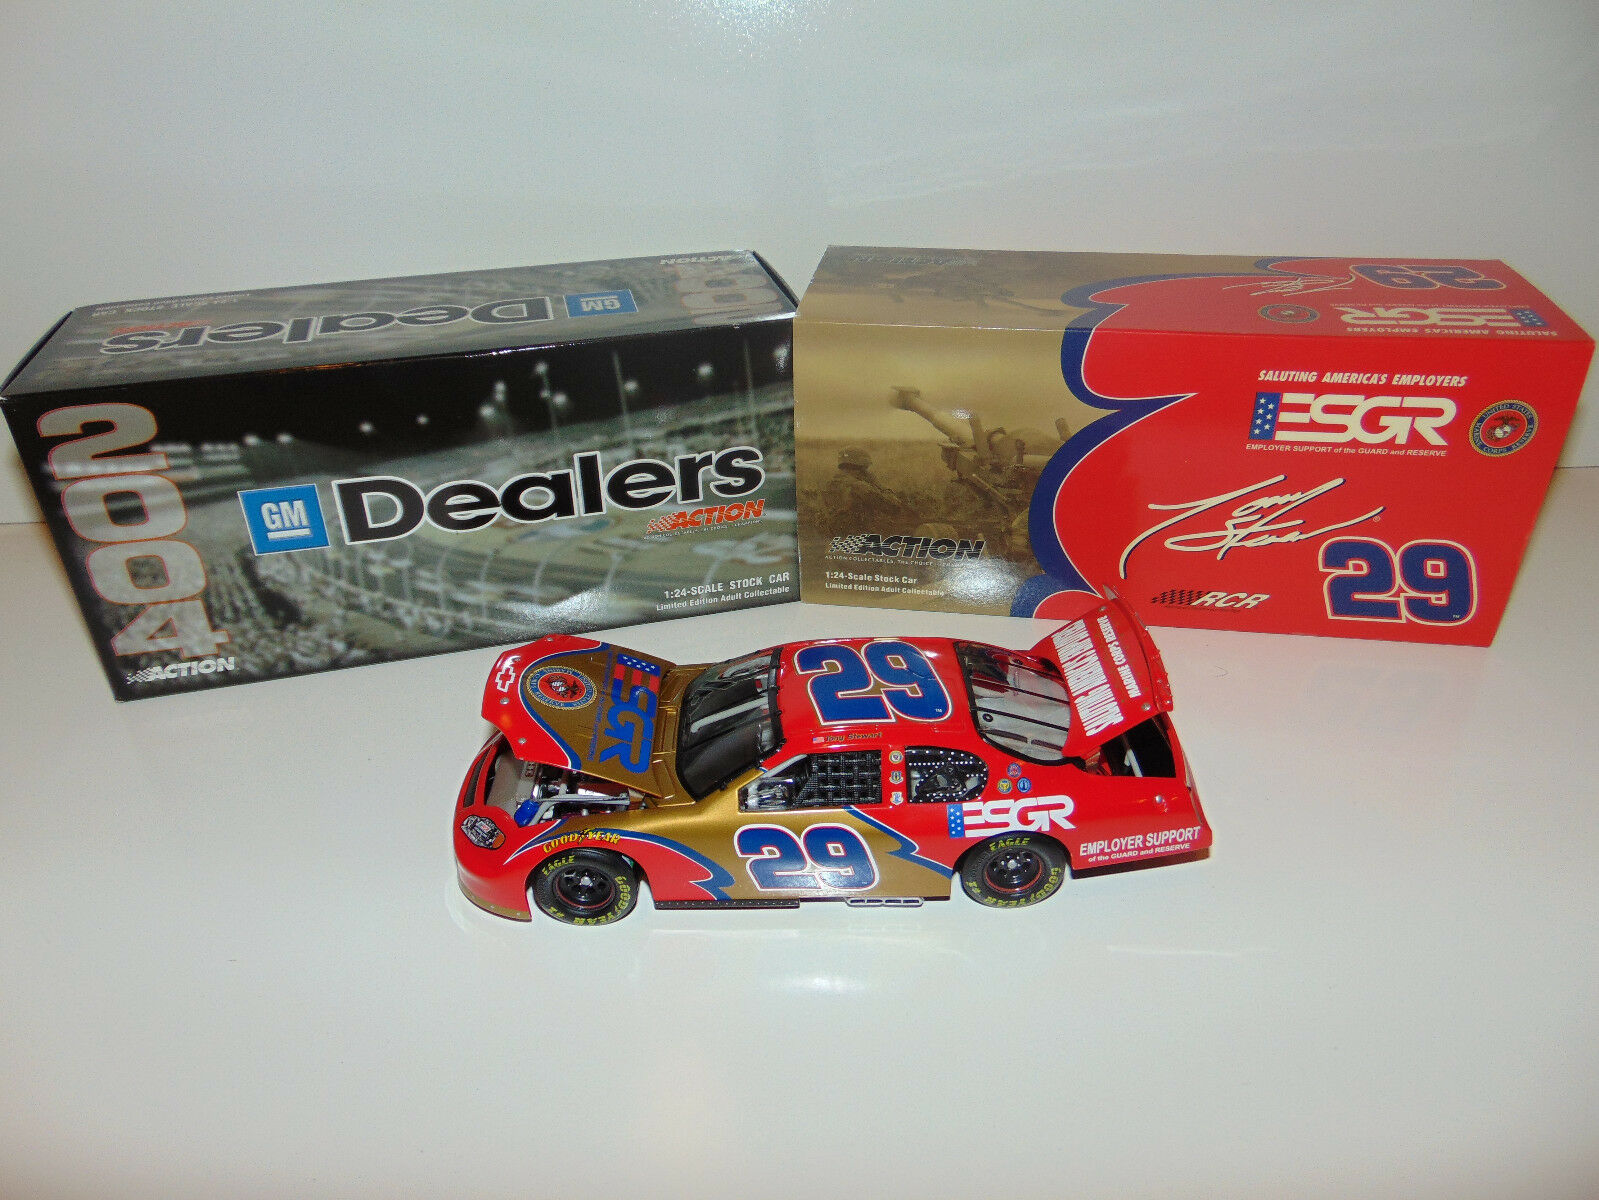 TONY STEWART 2004 ESGR MARINES 1 372 DEALERS CHEVY MONTE CARLO RACING NASCAR